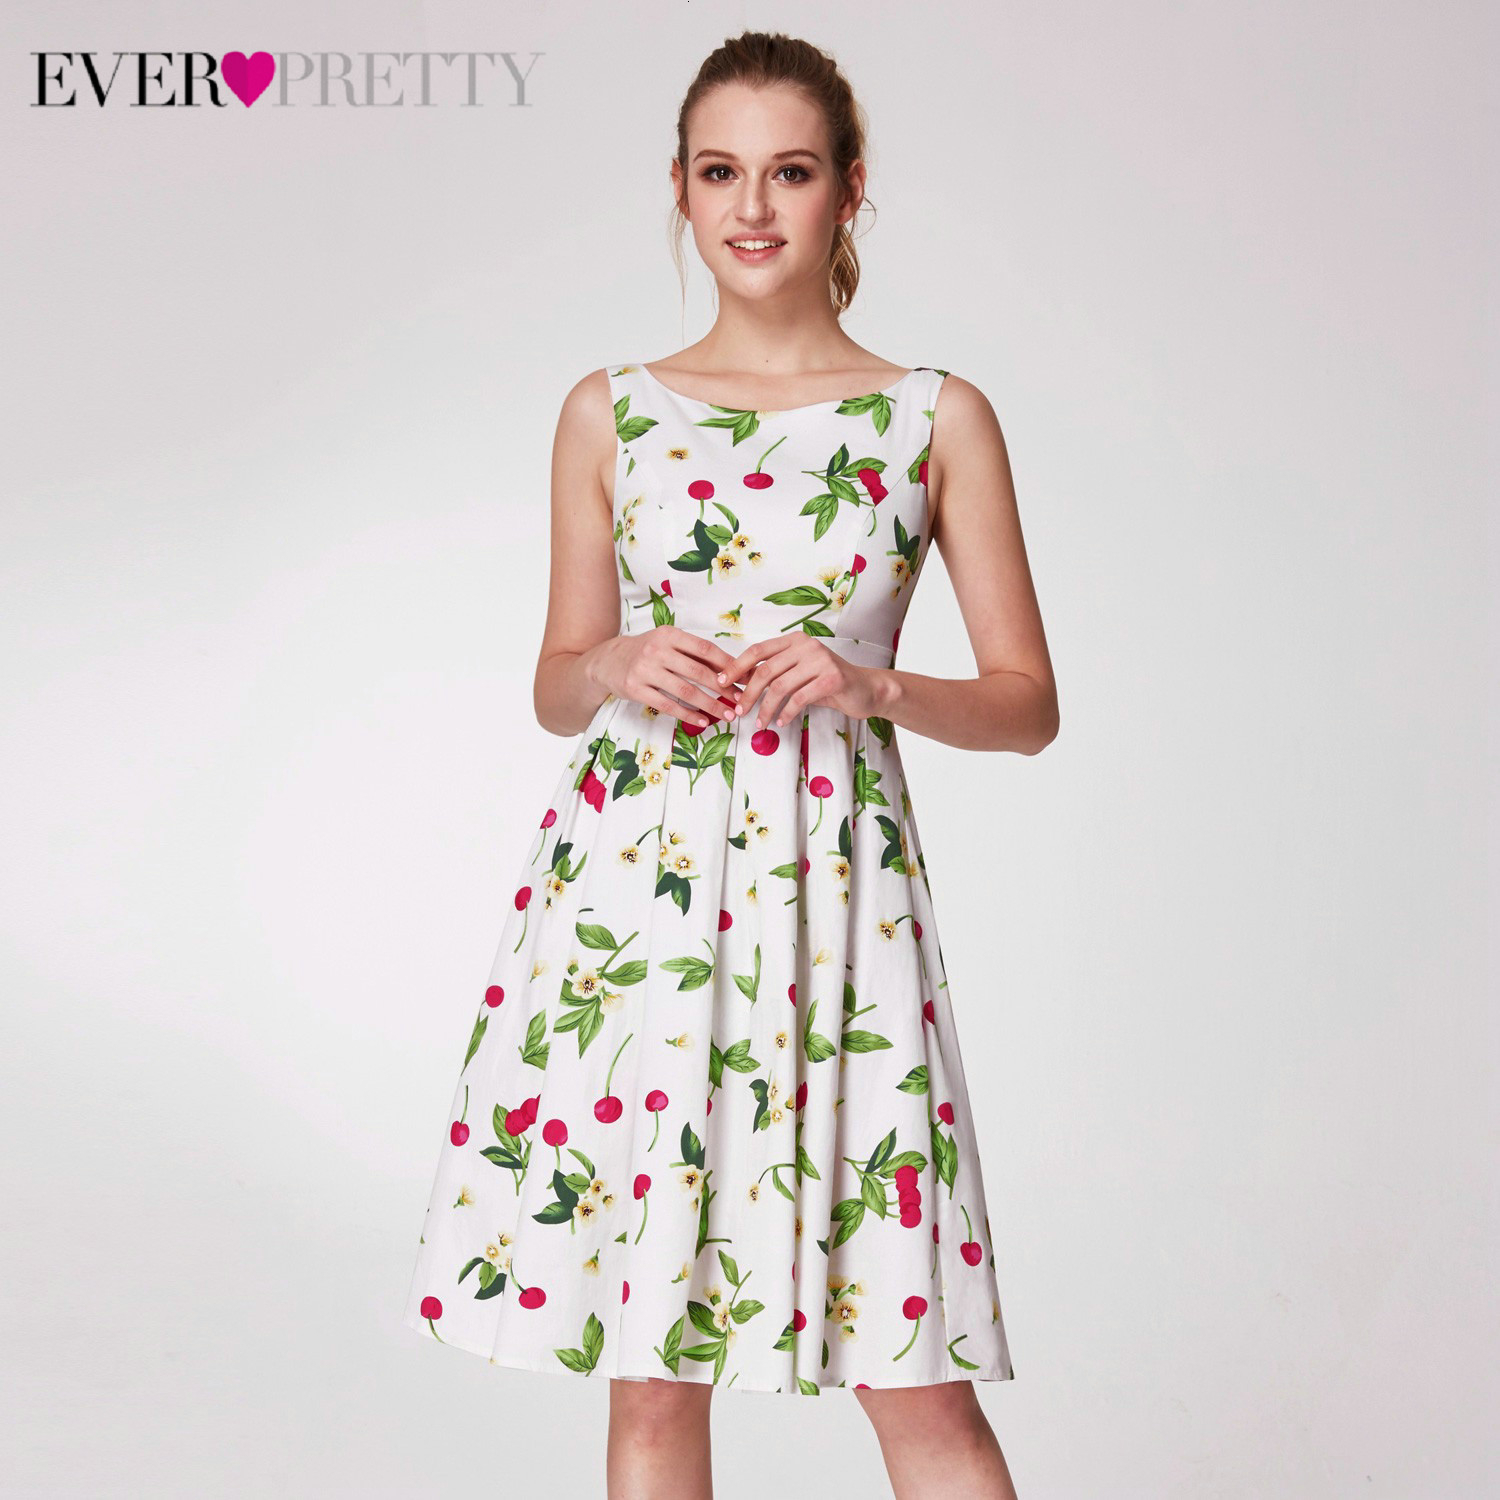 Elegant Floral Printed Homecoming Dresses Ever Pretty A-Line V-Neck Sleeveless Simple Graduation Dresses Vestido Festa Curto